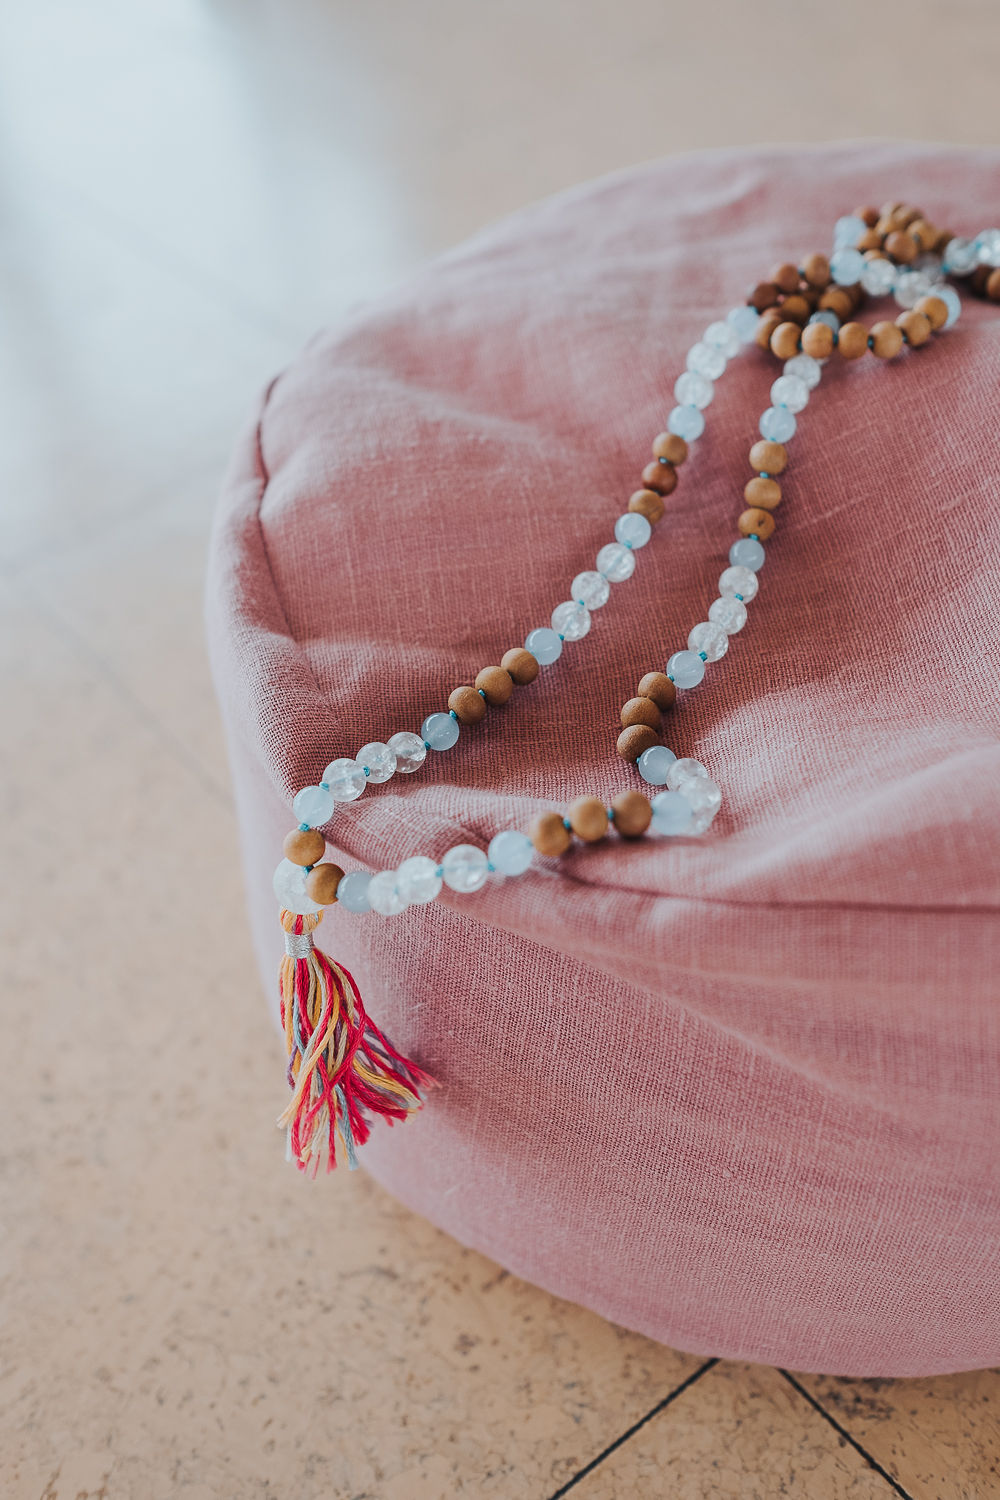 Meditation cushion and mala necklace